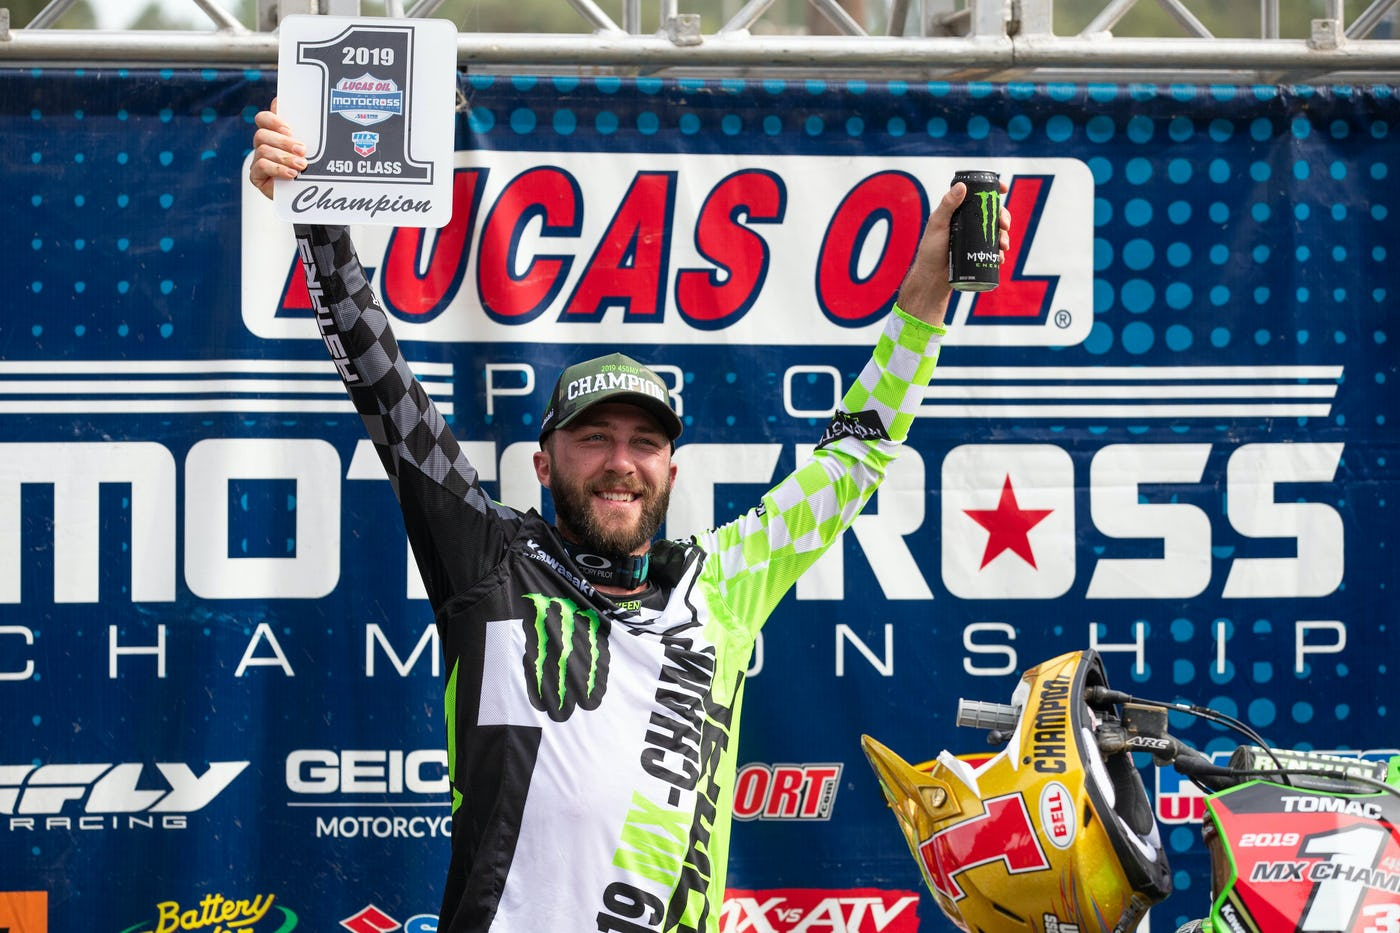 Eli Tomac becomes the fourth rider in history to three-peat as the premier class champion in the Lucas Oil AMA Pro Motocross Championship.